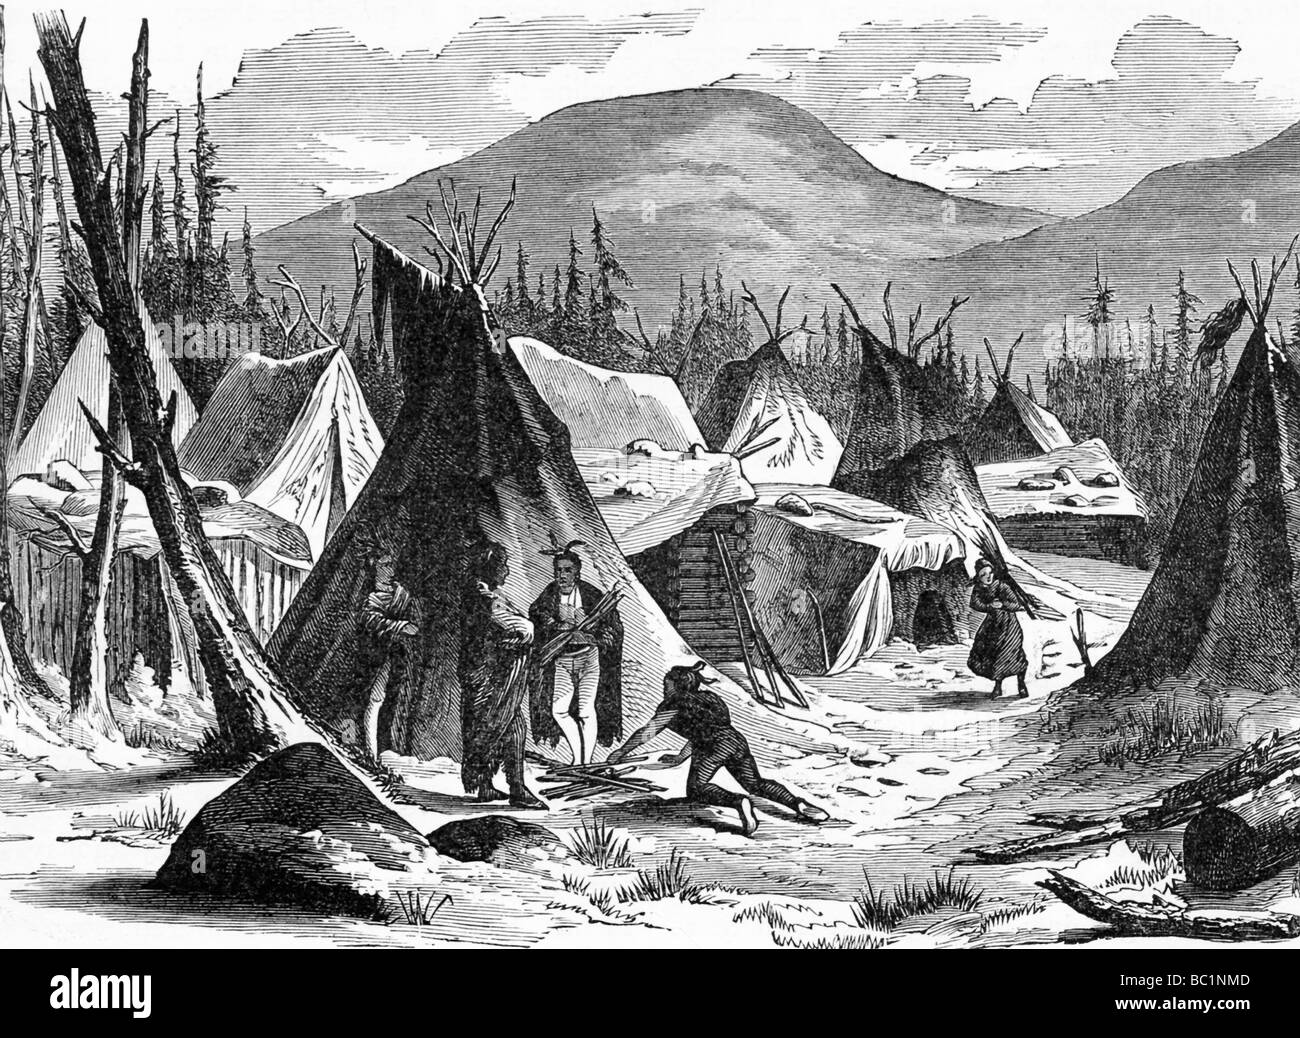 This S Illustration Shows A Native American Village In